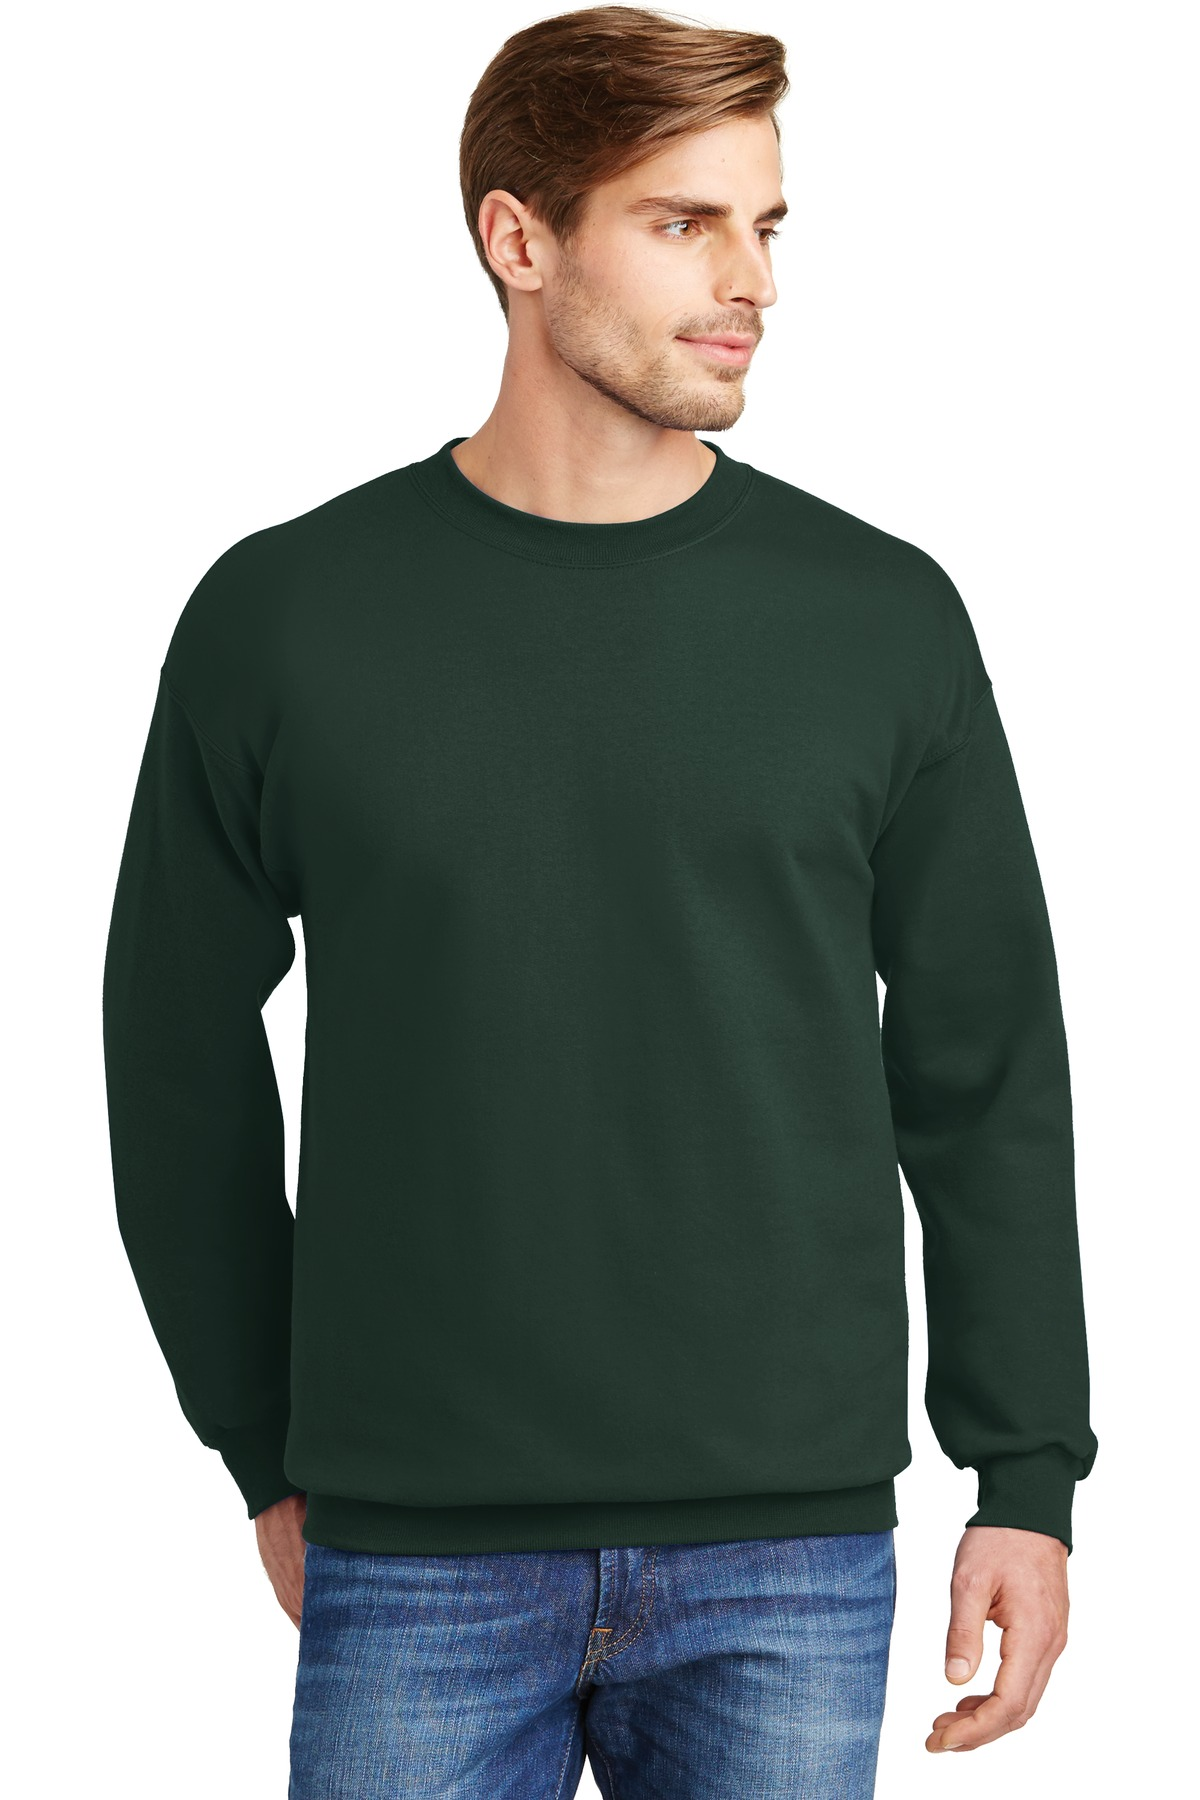 Hanes ®  Ultimate Cotton ®  - Crewneck Sweatshirt.  F260 - Deep Forest